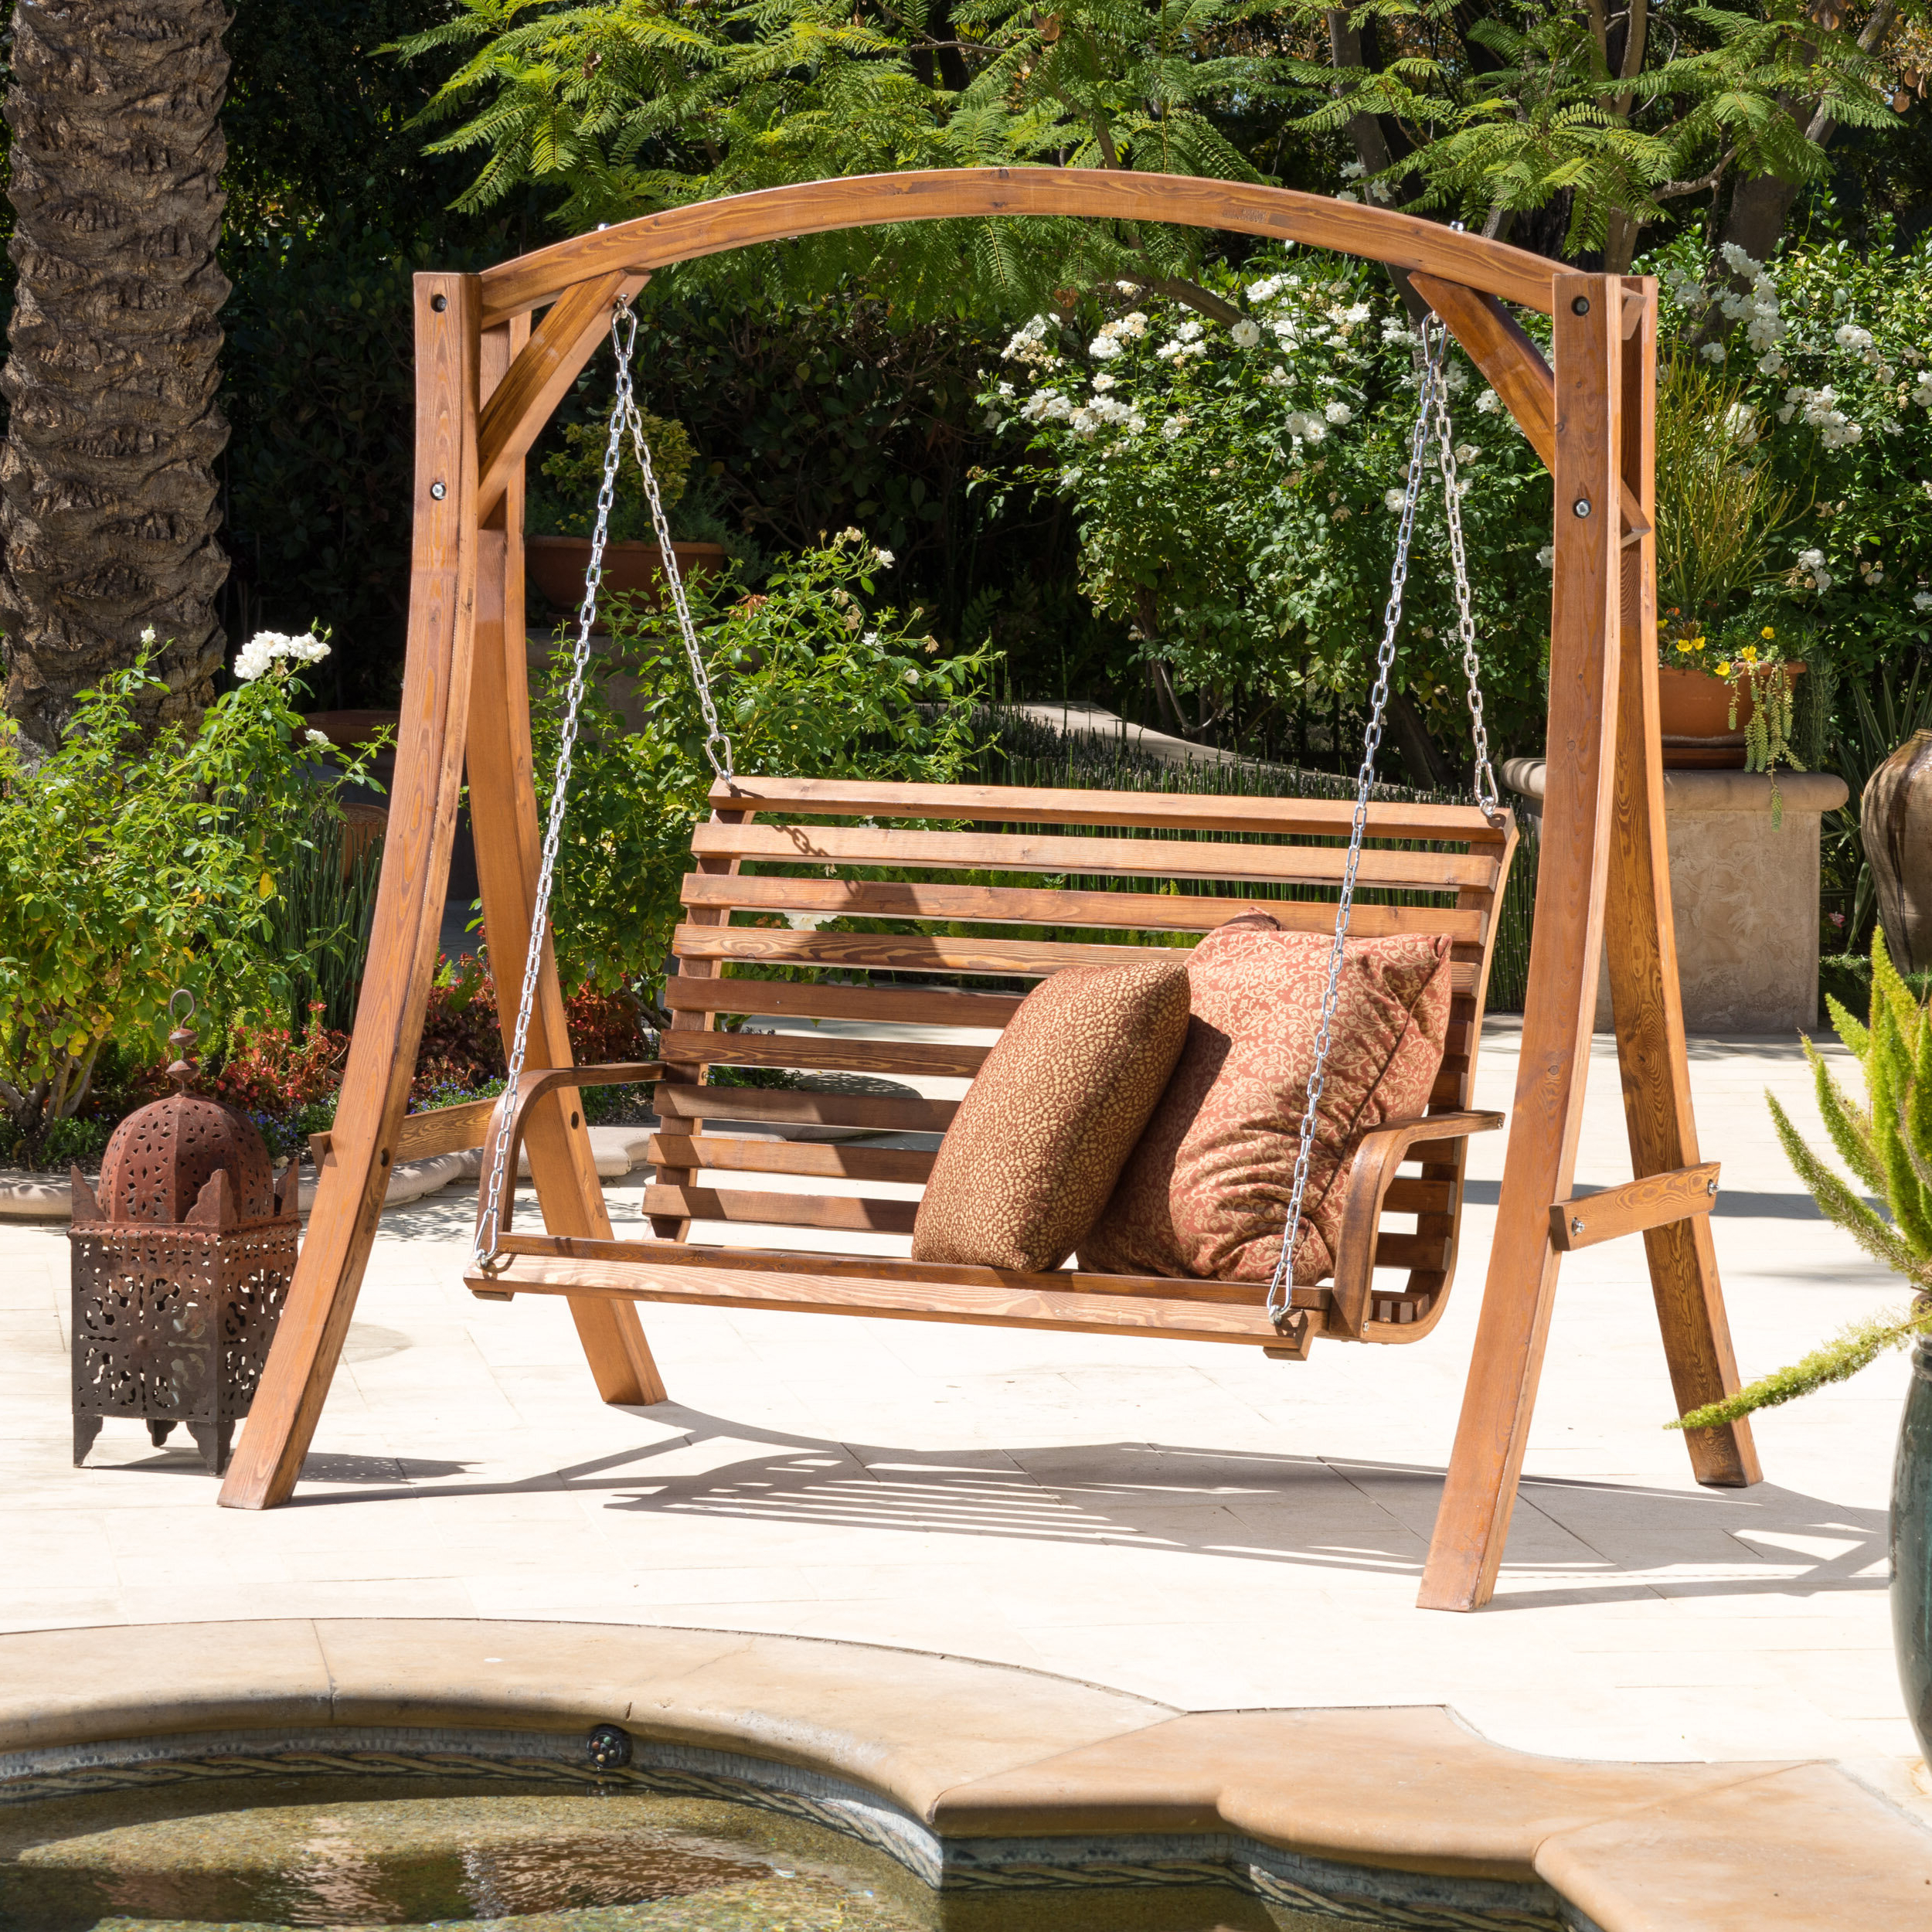 Famous Porch Swings With Stand Intended For Freeport Park Brandi Porch Swing With Stand & Reviews (View 3 of 25)